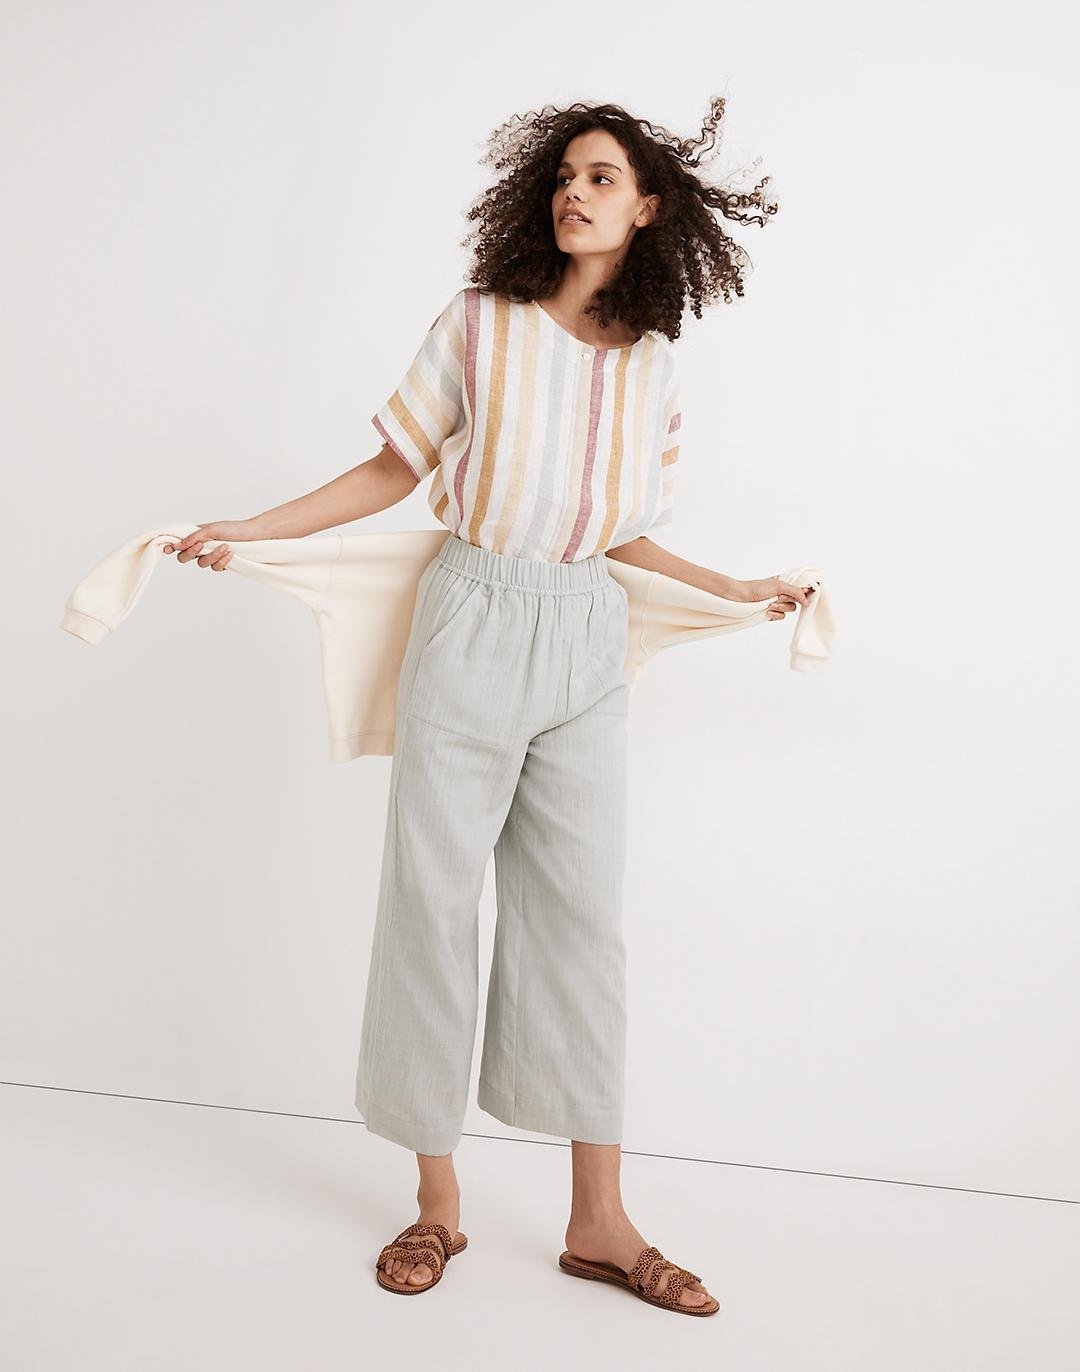 Madewell x LAUDE the Label Everyday Crop Pants